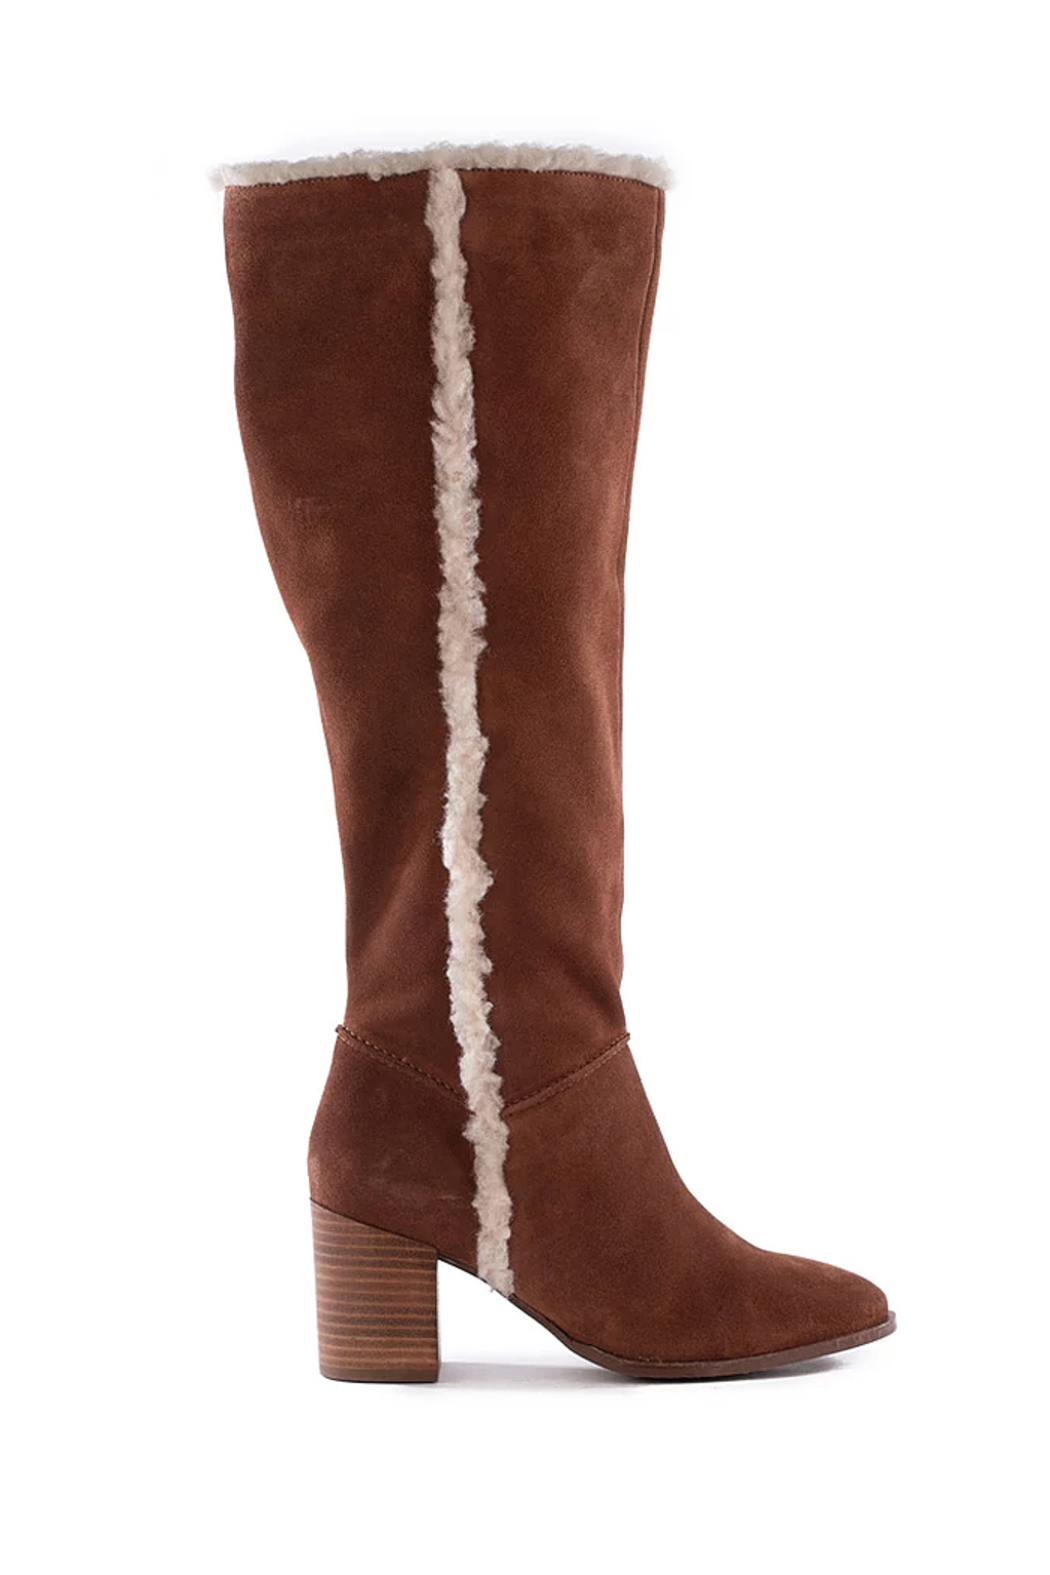 Seychelles Face to Face Shearling Tall Boot - Main Image